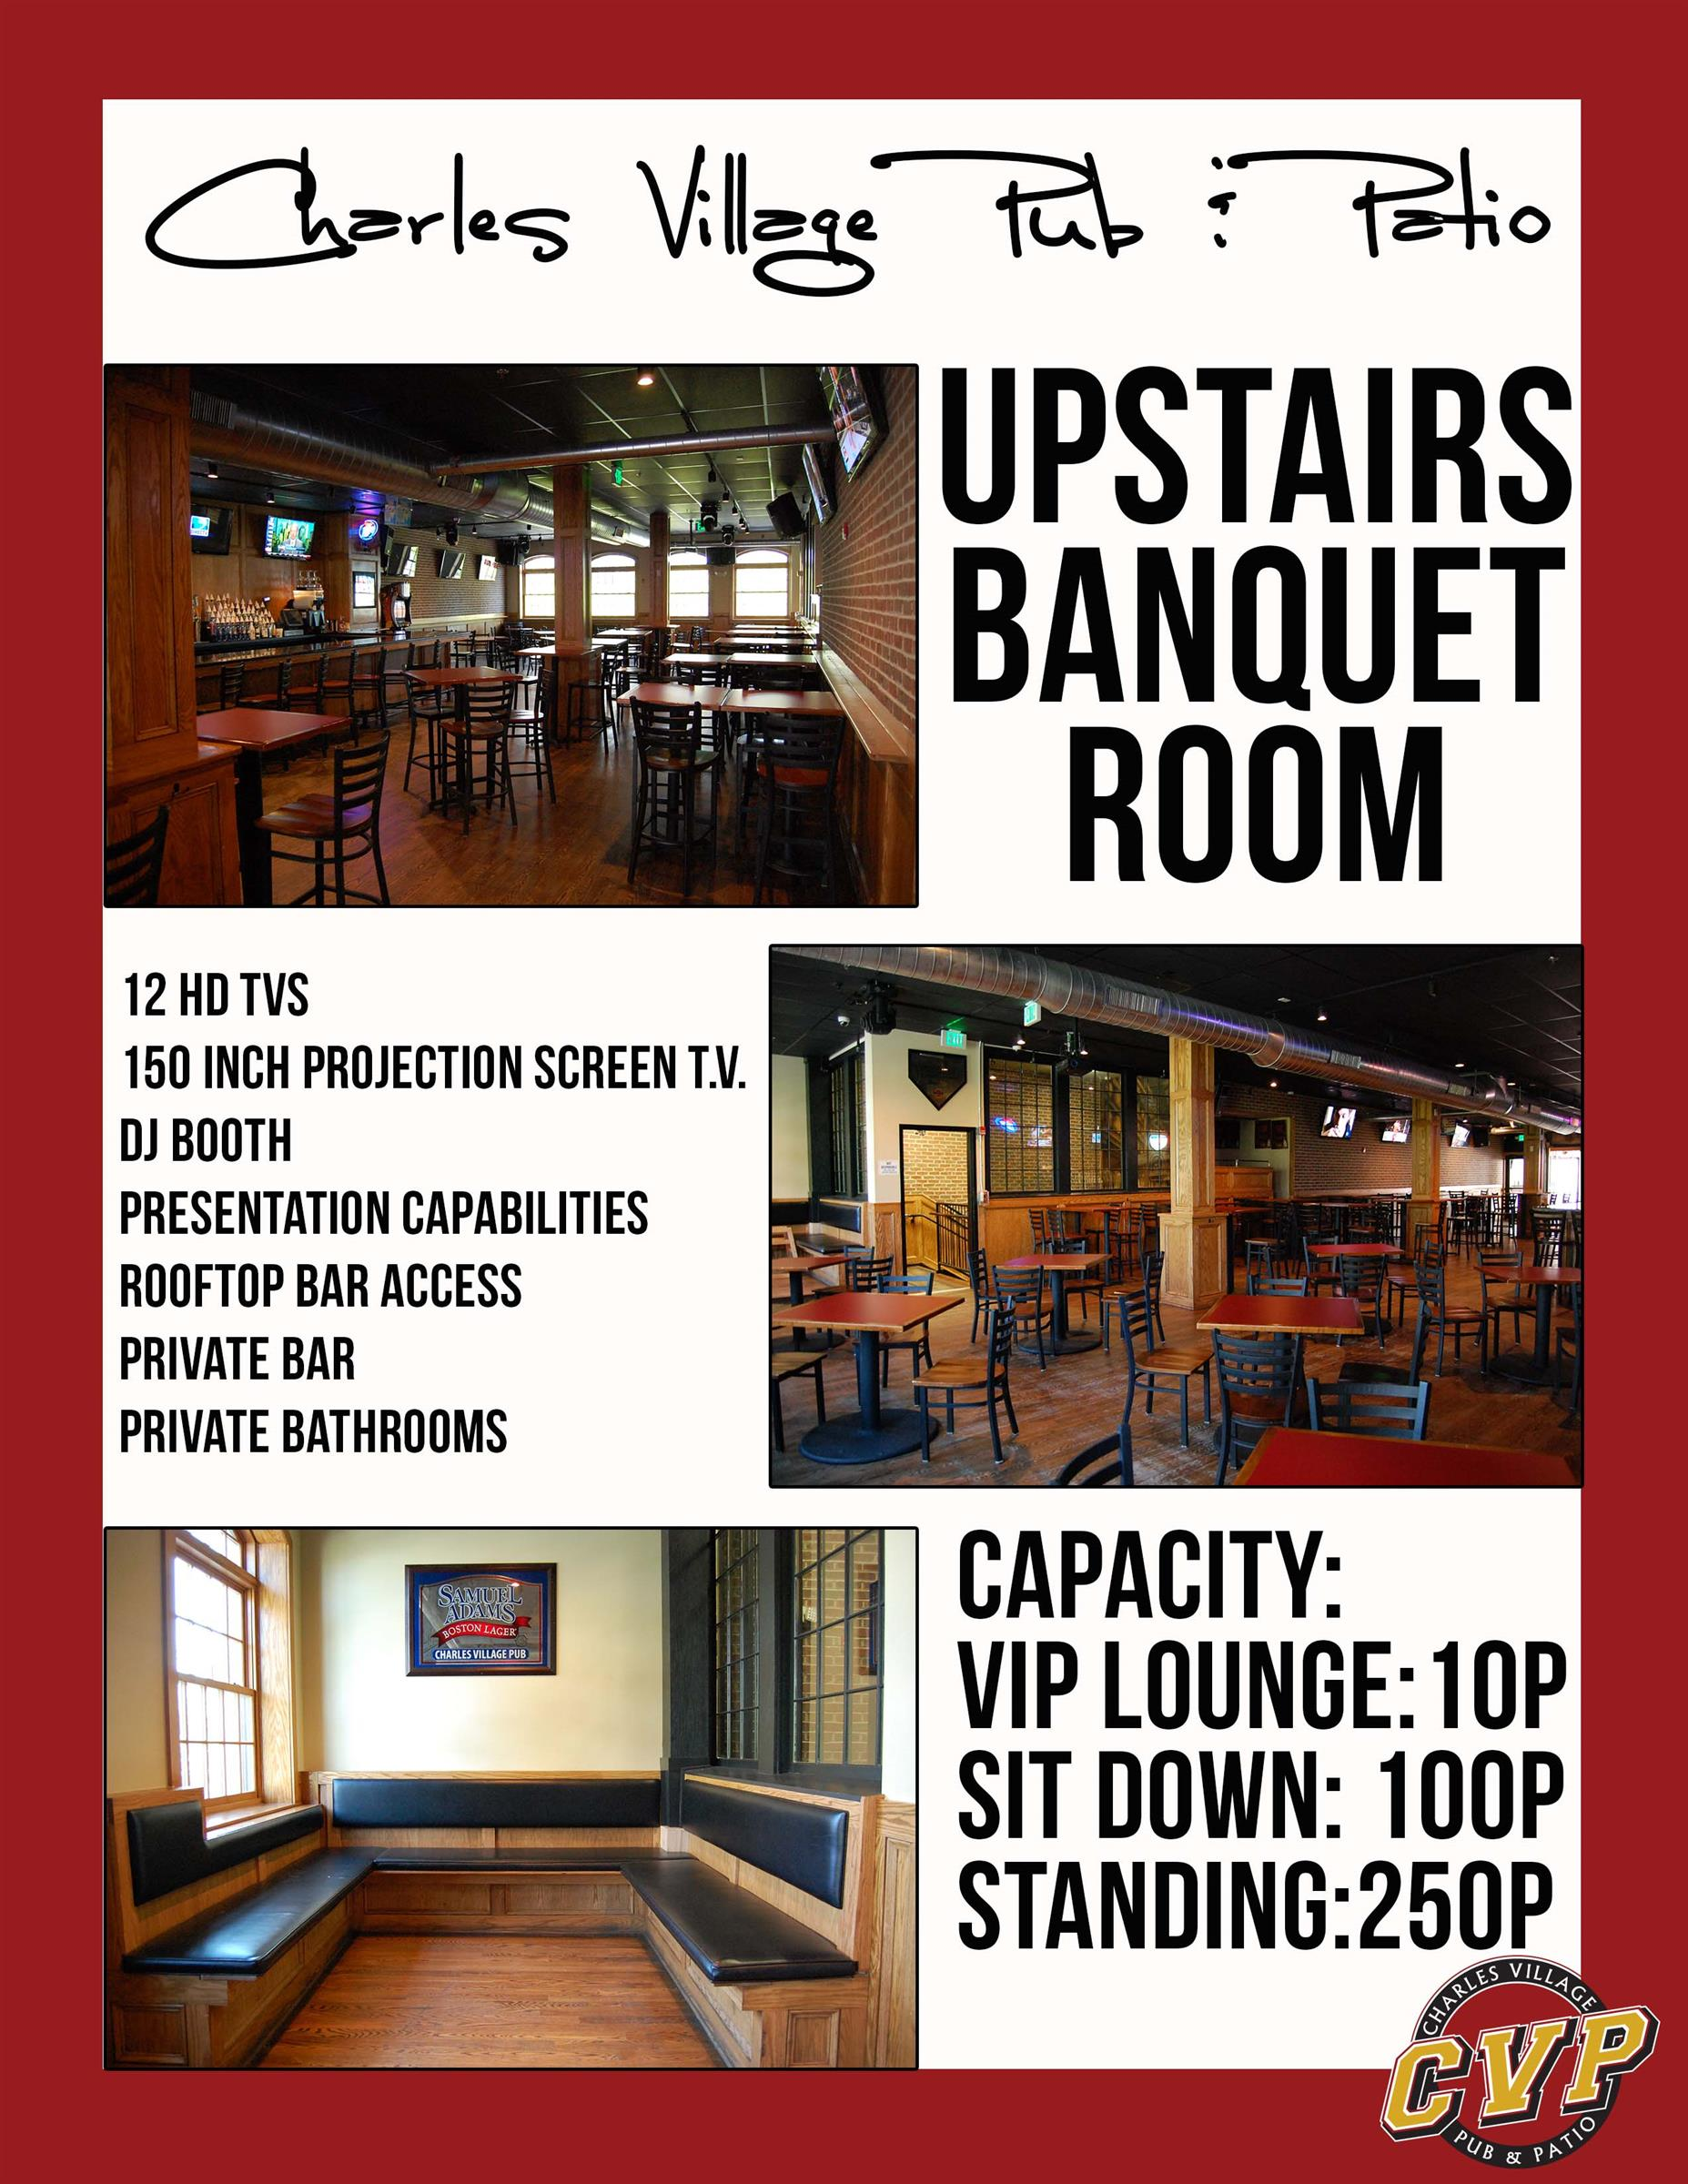 charles village pub and patio. upstairs banquet room. 12 hd tvs 150 inch projection screen t.v. dj booth presentation capabilities rooftop bar access private bar private bathrooms. capacity: vip lounge: 10p sit down: 100p standing; 250p